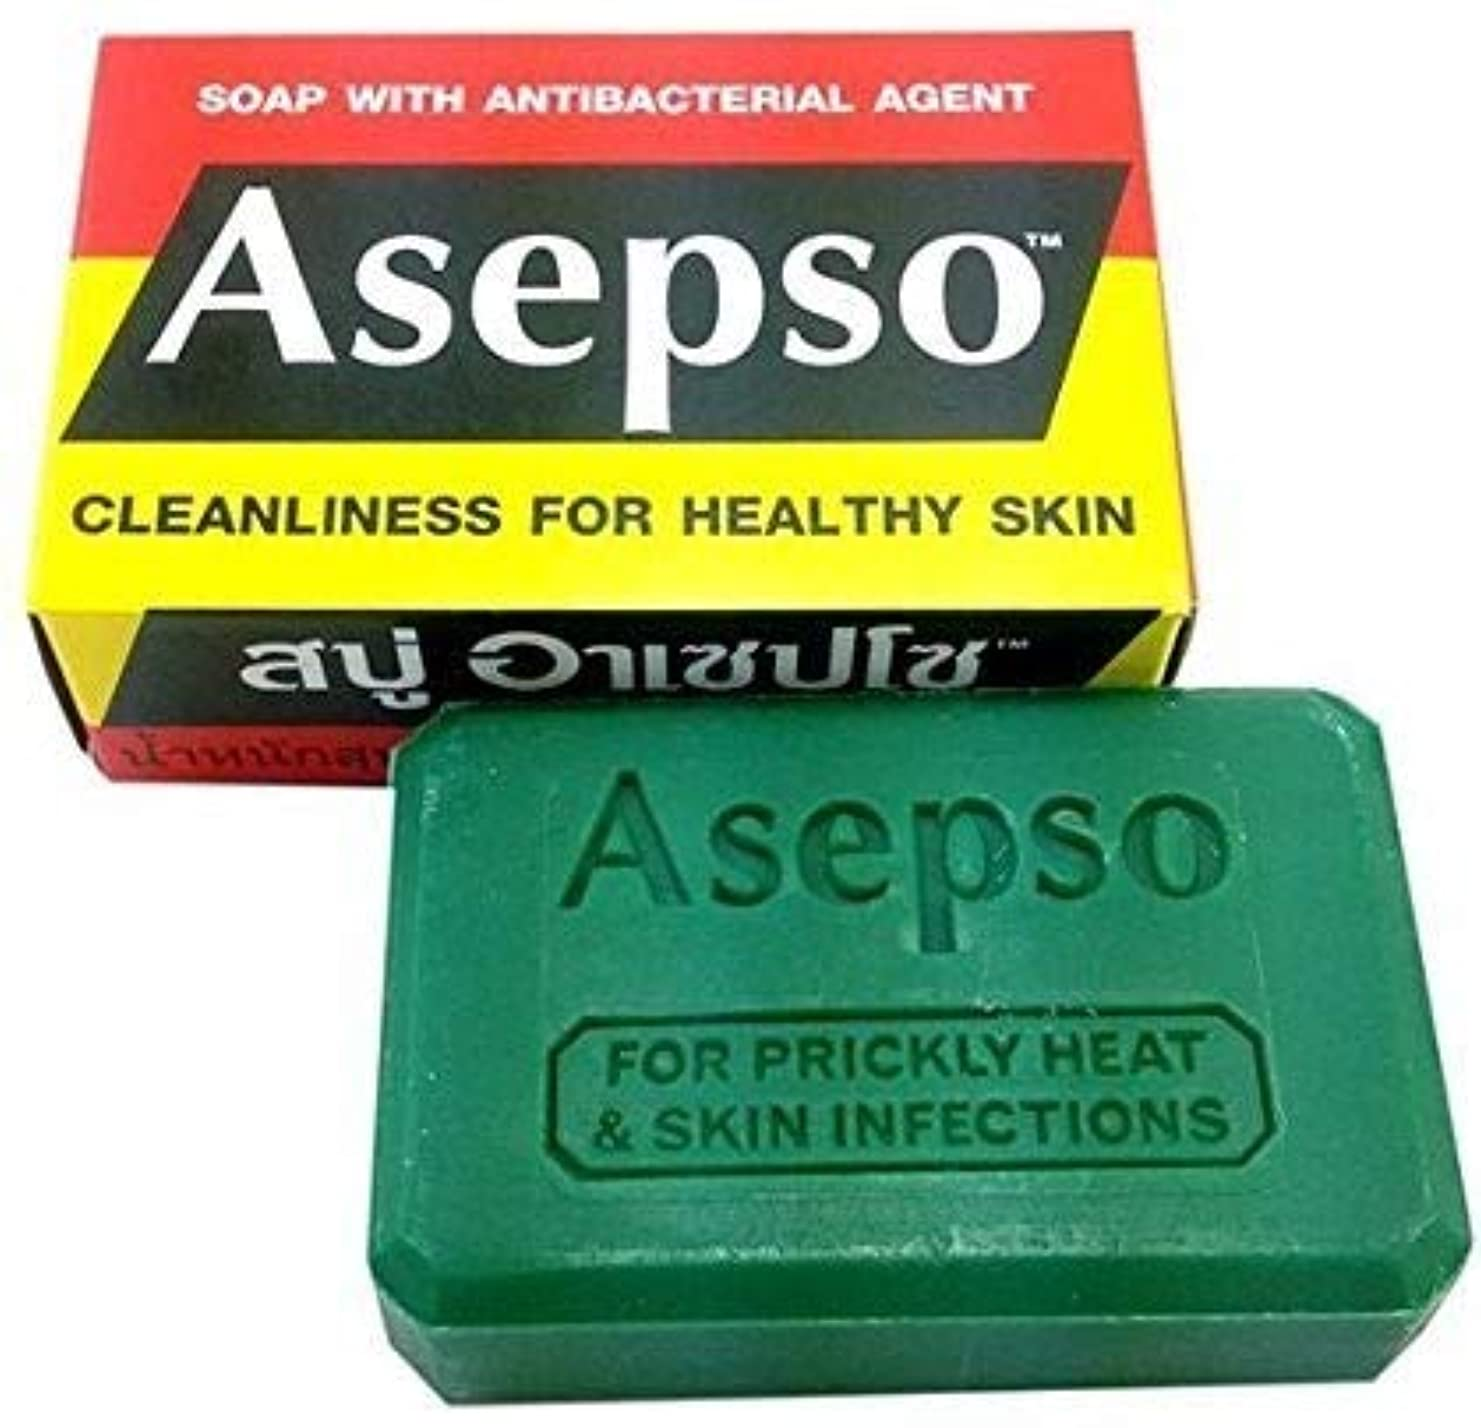 ボード魔術師展示会Ni Yom Thai shop Asepso Soap with Antibacterial Agent 80 Grams